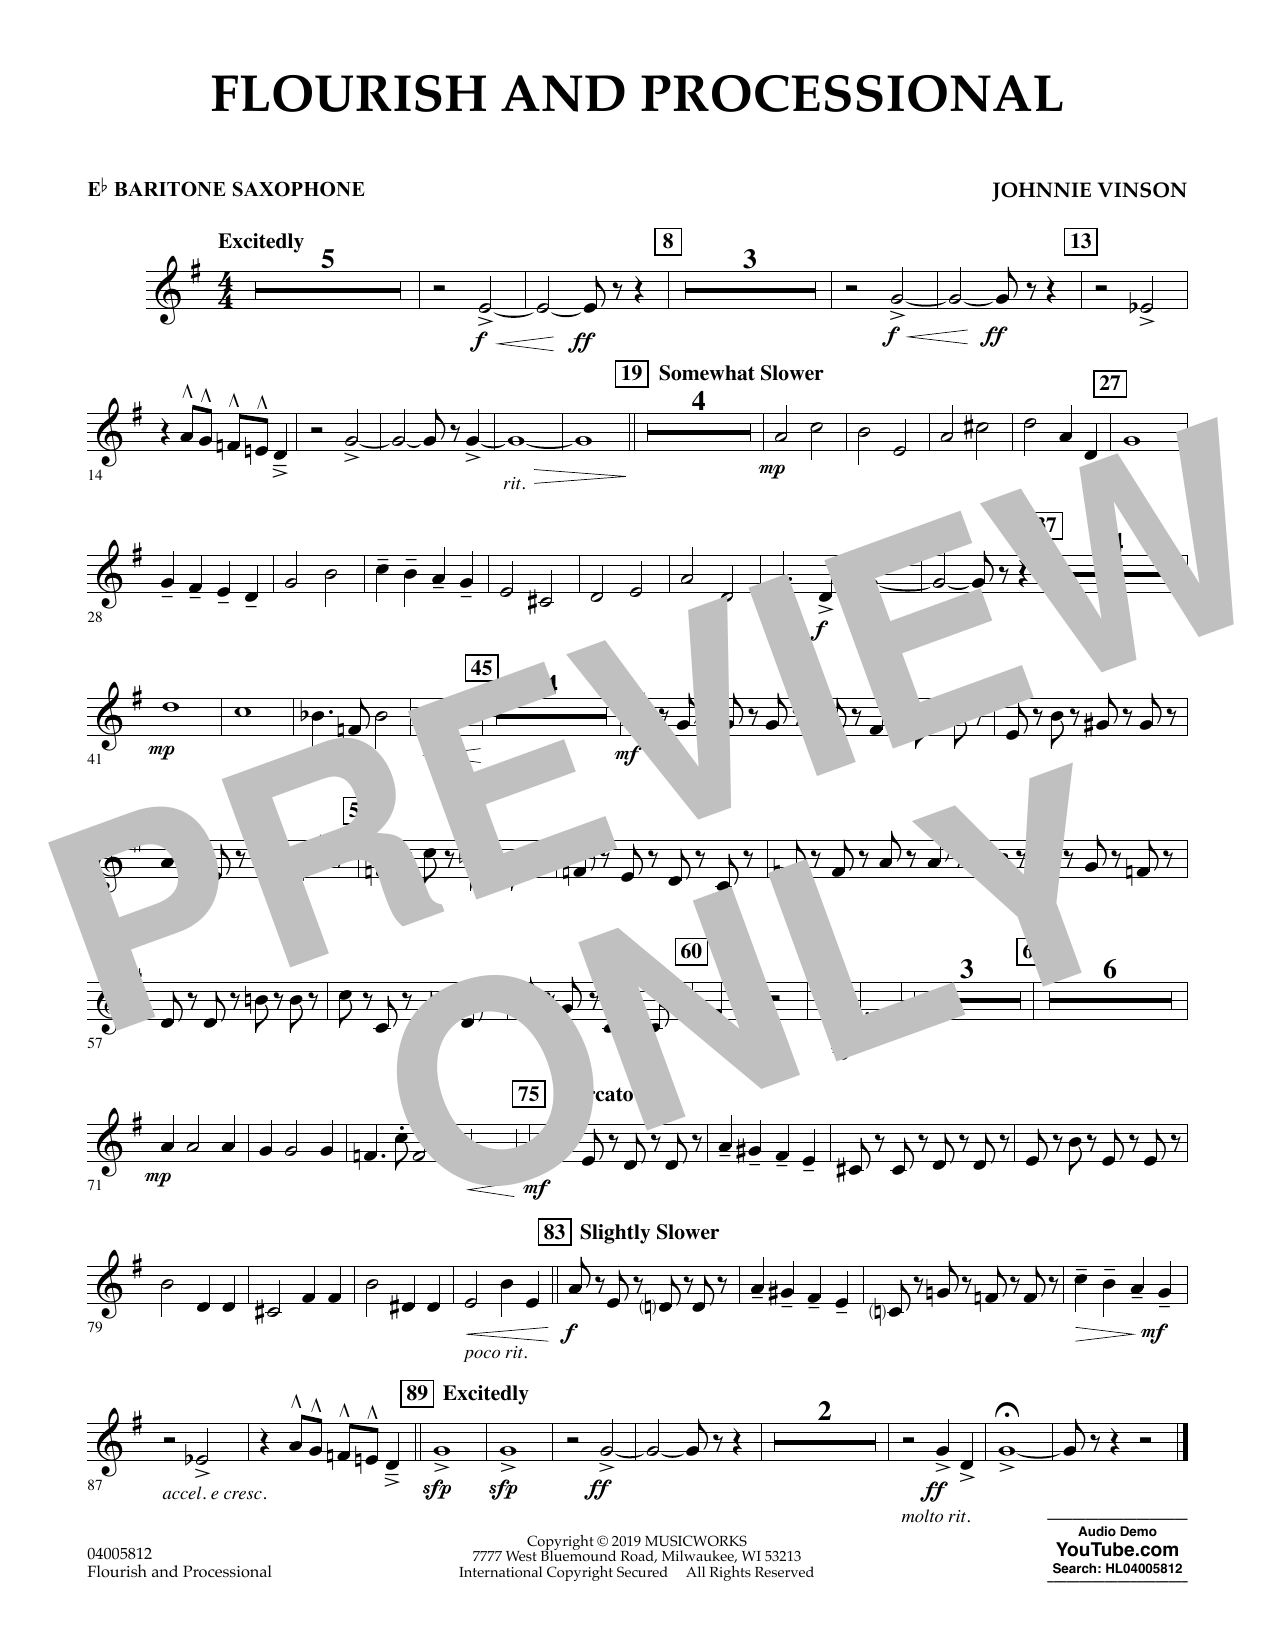 Johnnie Vinson Flourish and Processional - Eb Baritone Saxophone sheet music preview music notes and score for Concert Band including 1 page(s)